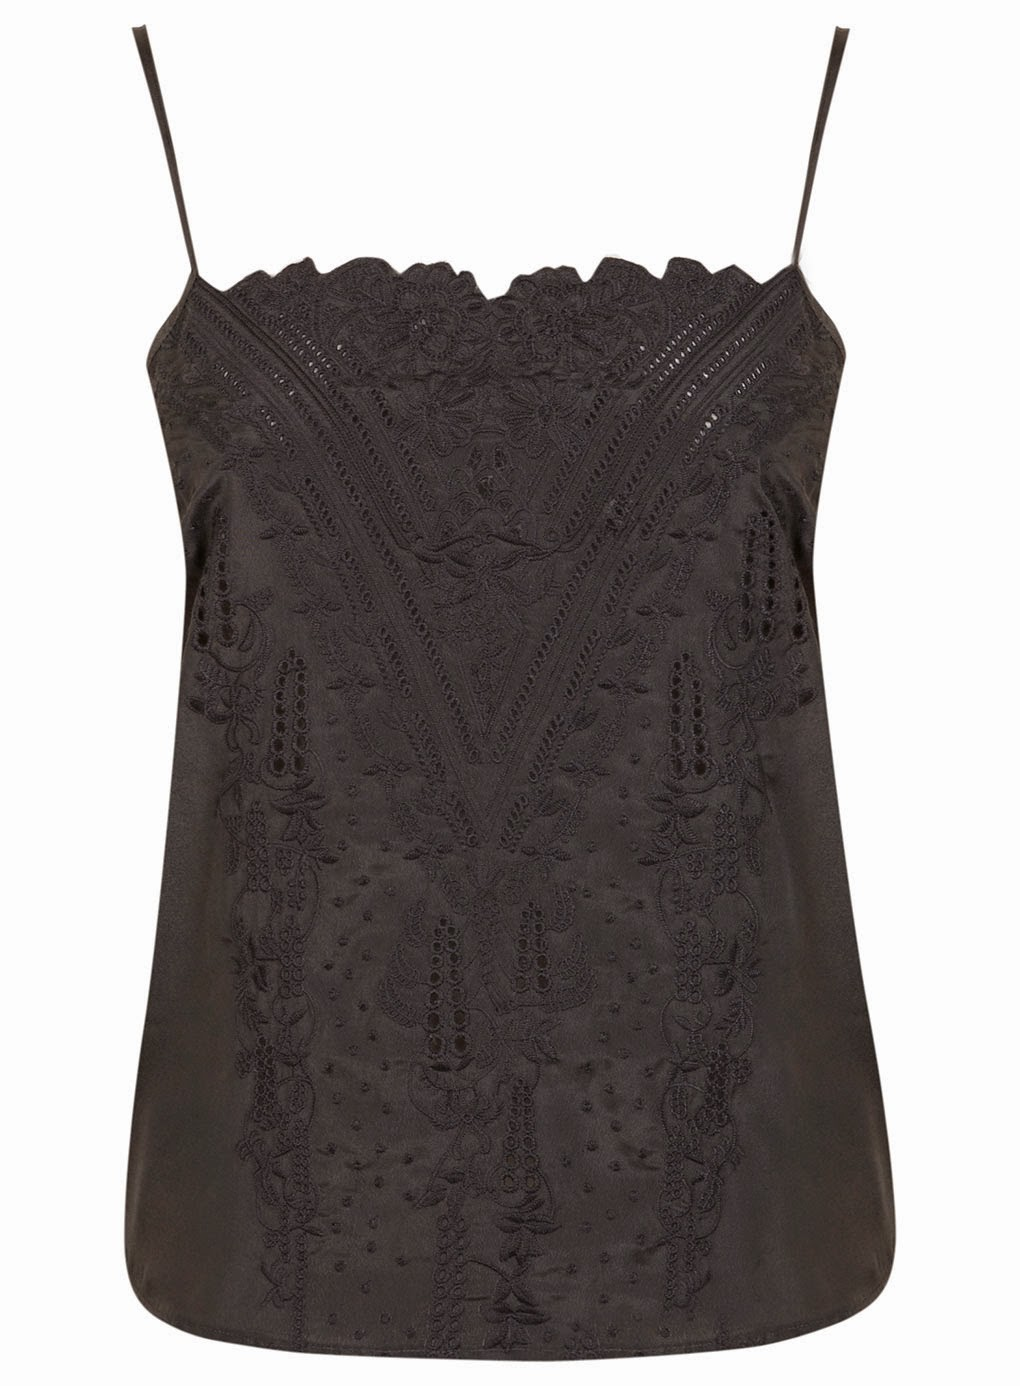 pretty cami top, miss selfridge black cami,